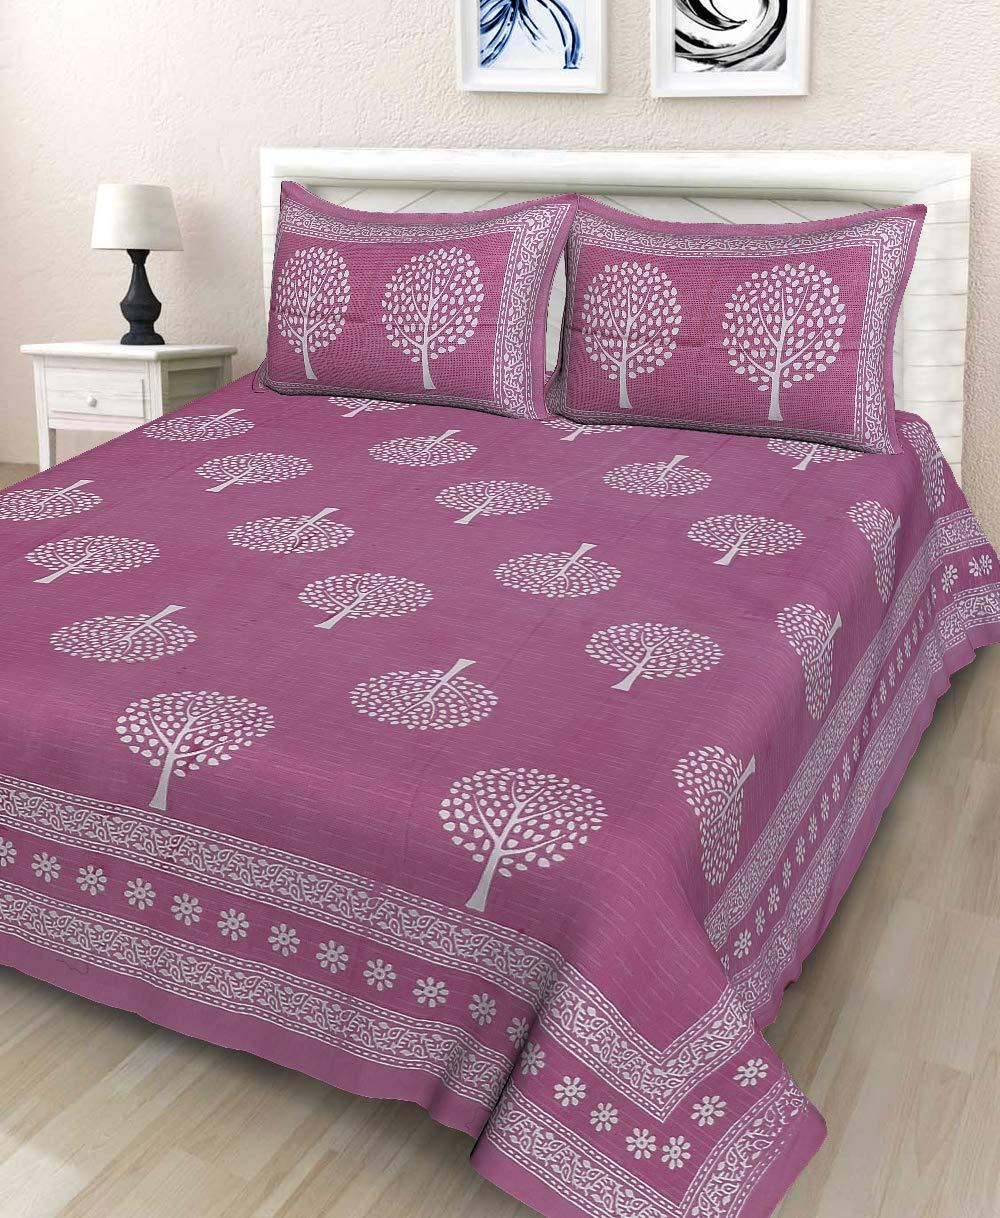 jaipuri Cotton Double BedSheet with 2 Pillow Covers Set